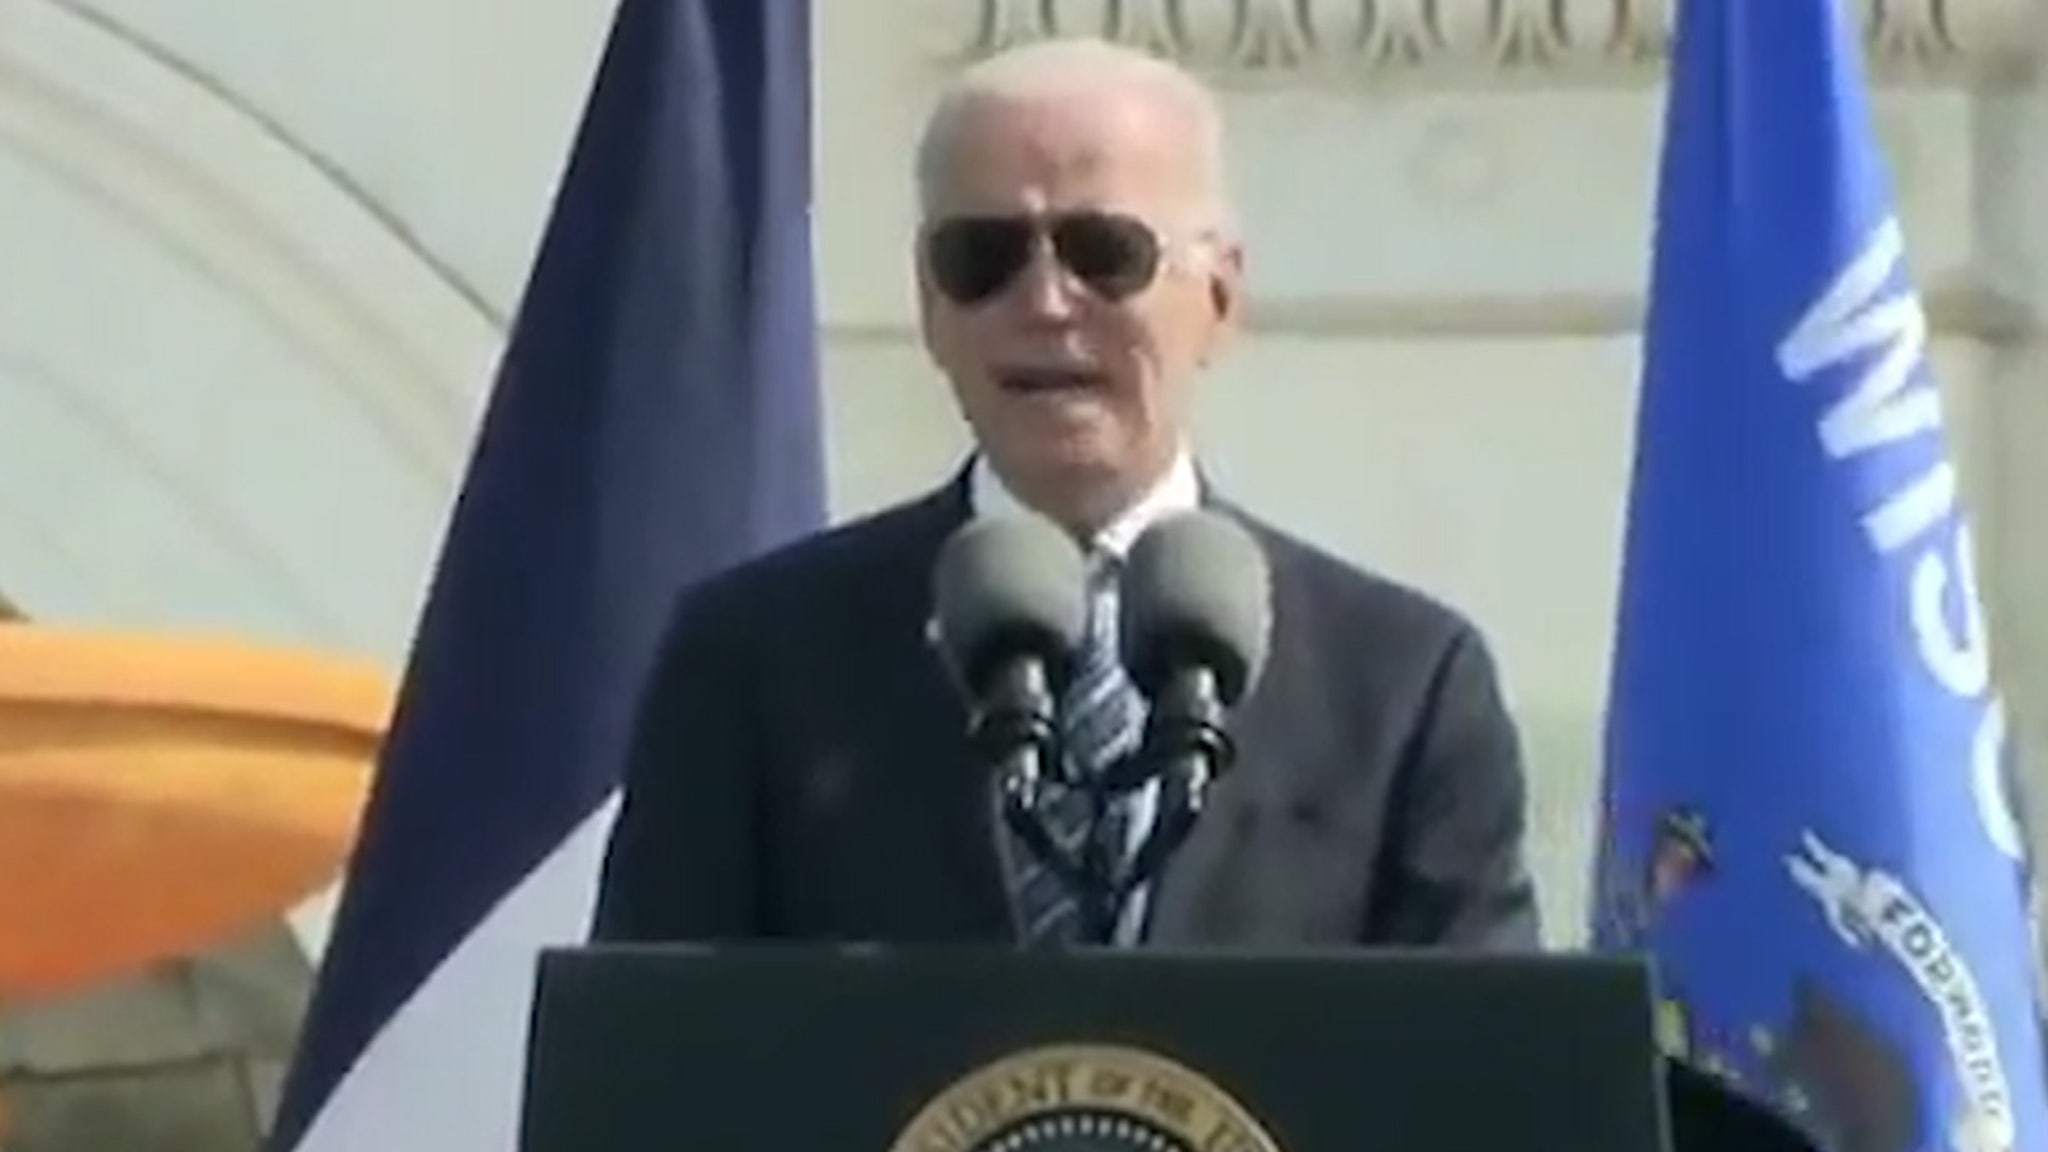 President Biden Says It's Tough Being a Cop, Rejects Defunding Police thumbnail